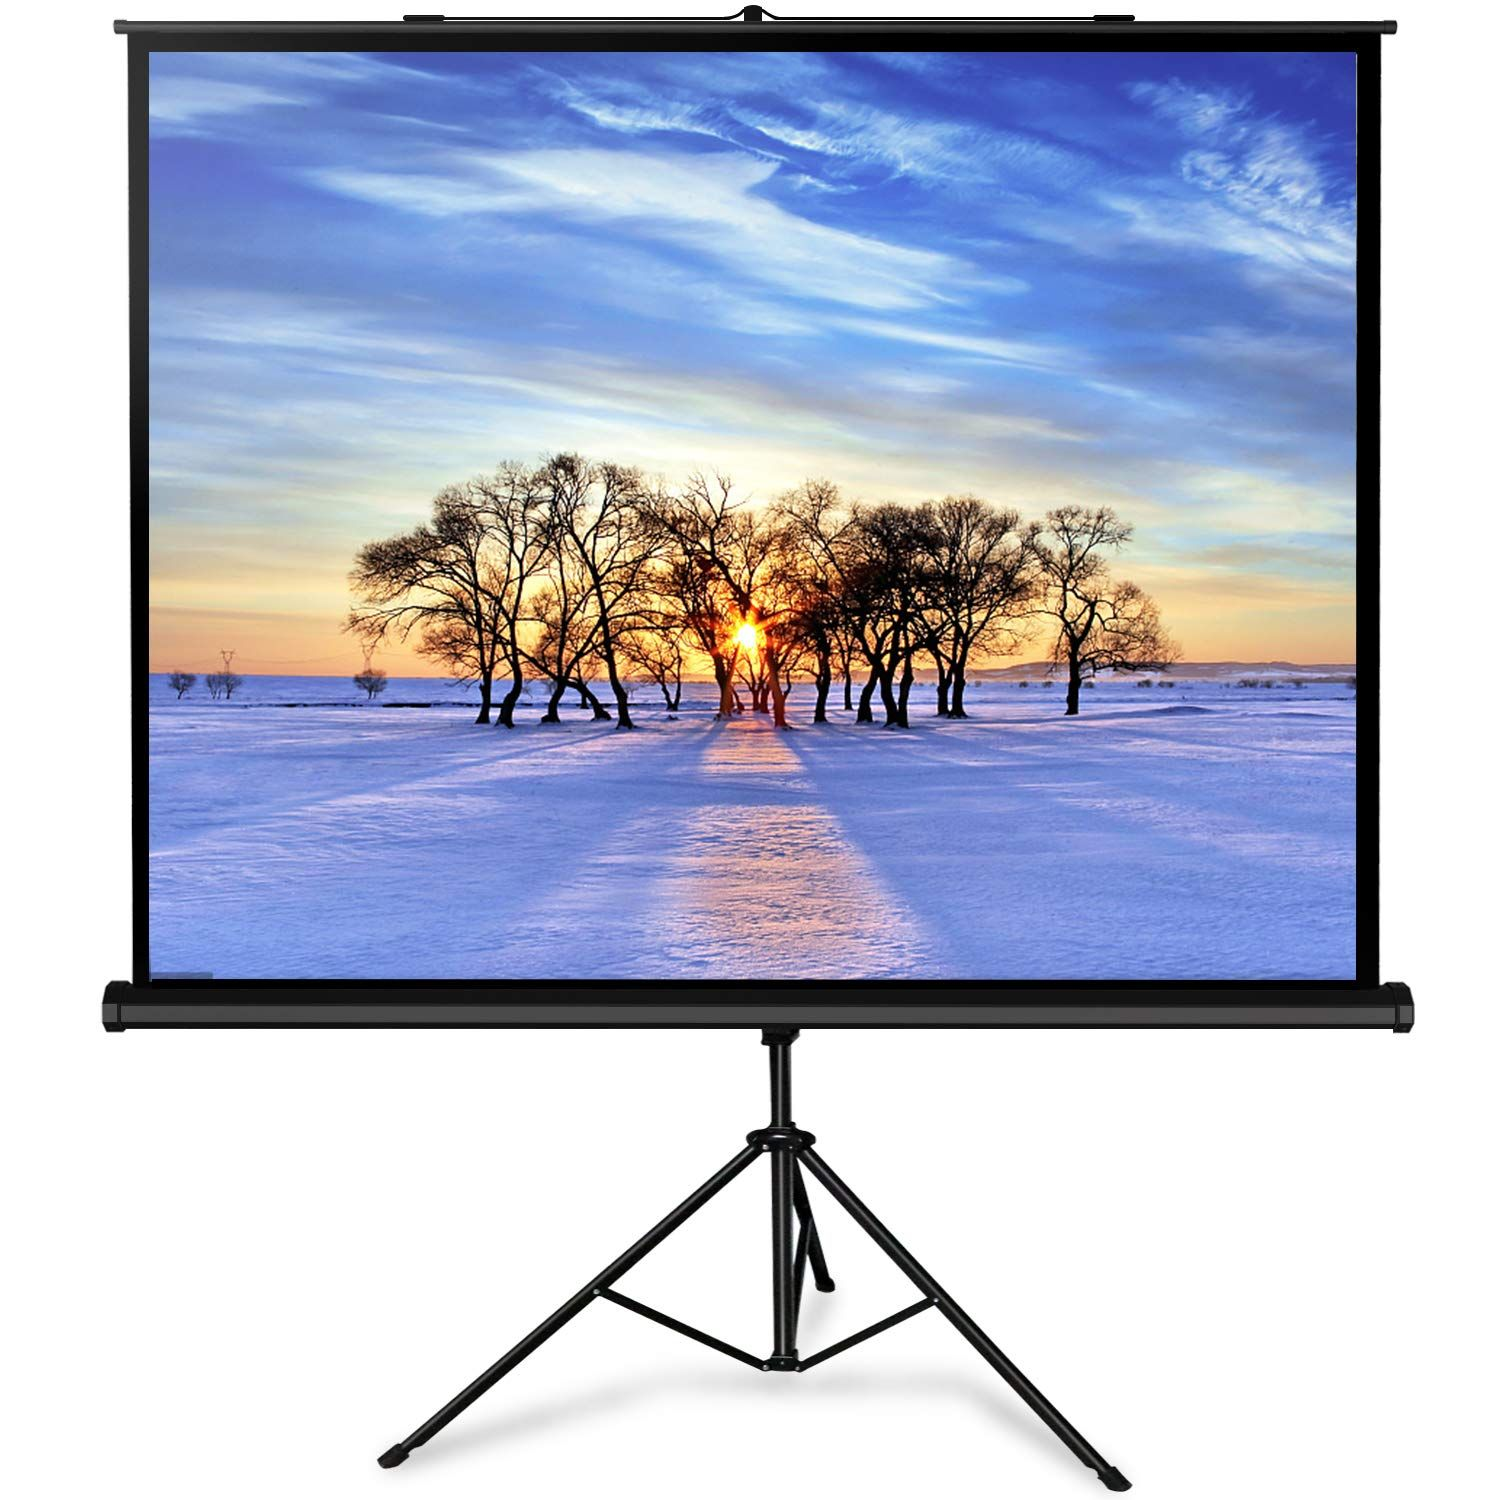 Perlesmith Projector Screen With Stand 100 Inch 4 3 Indoor Outdoor Height Adjustable Projection Screen Premium W With Images Projection Screen Outdoor Projector Screen